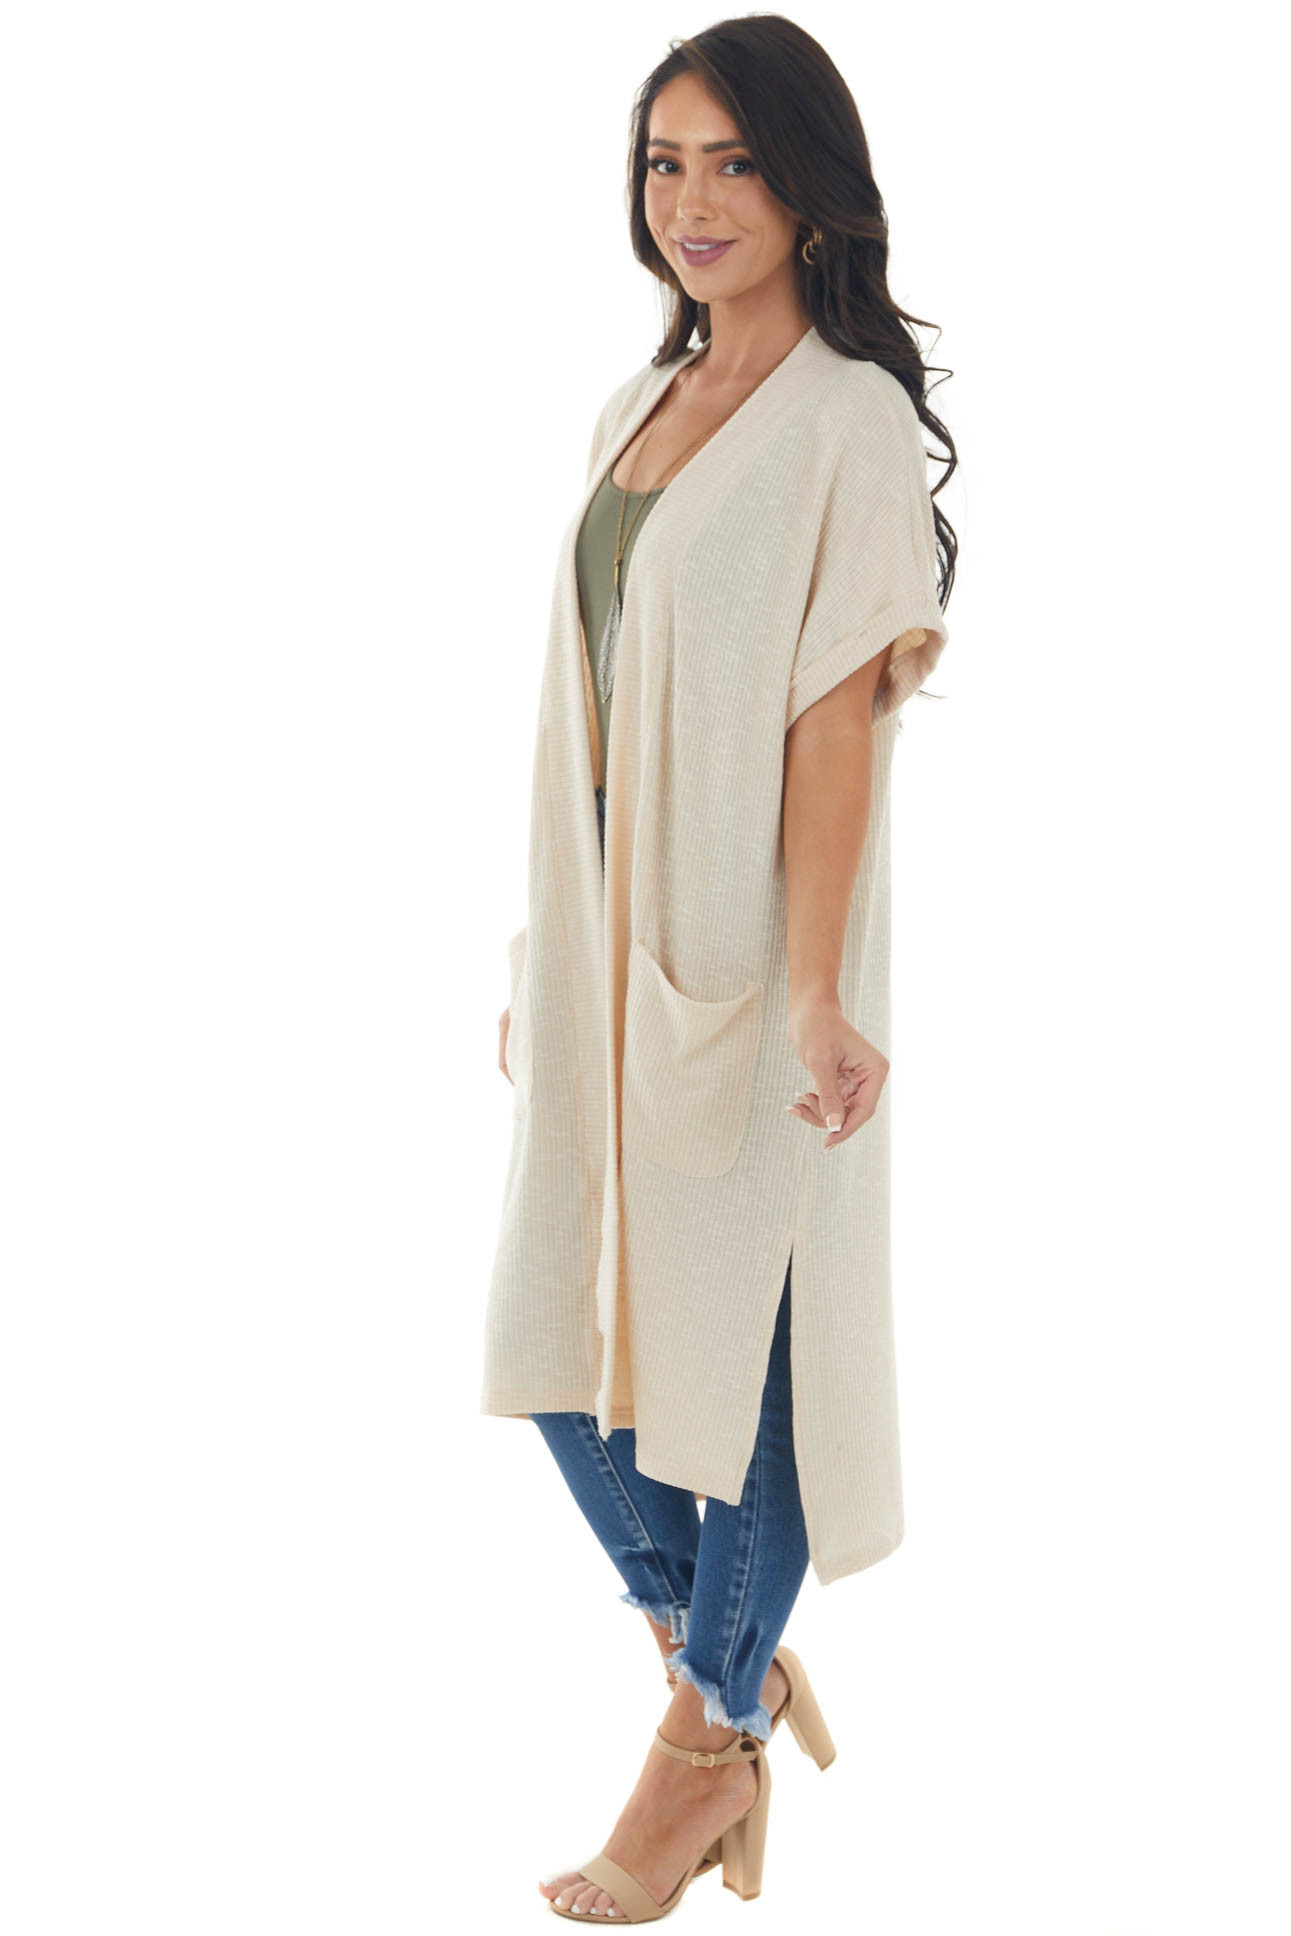 Champagne Short Sleeve Ribbed Knit Cardigan